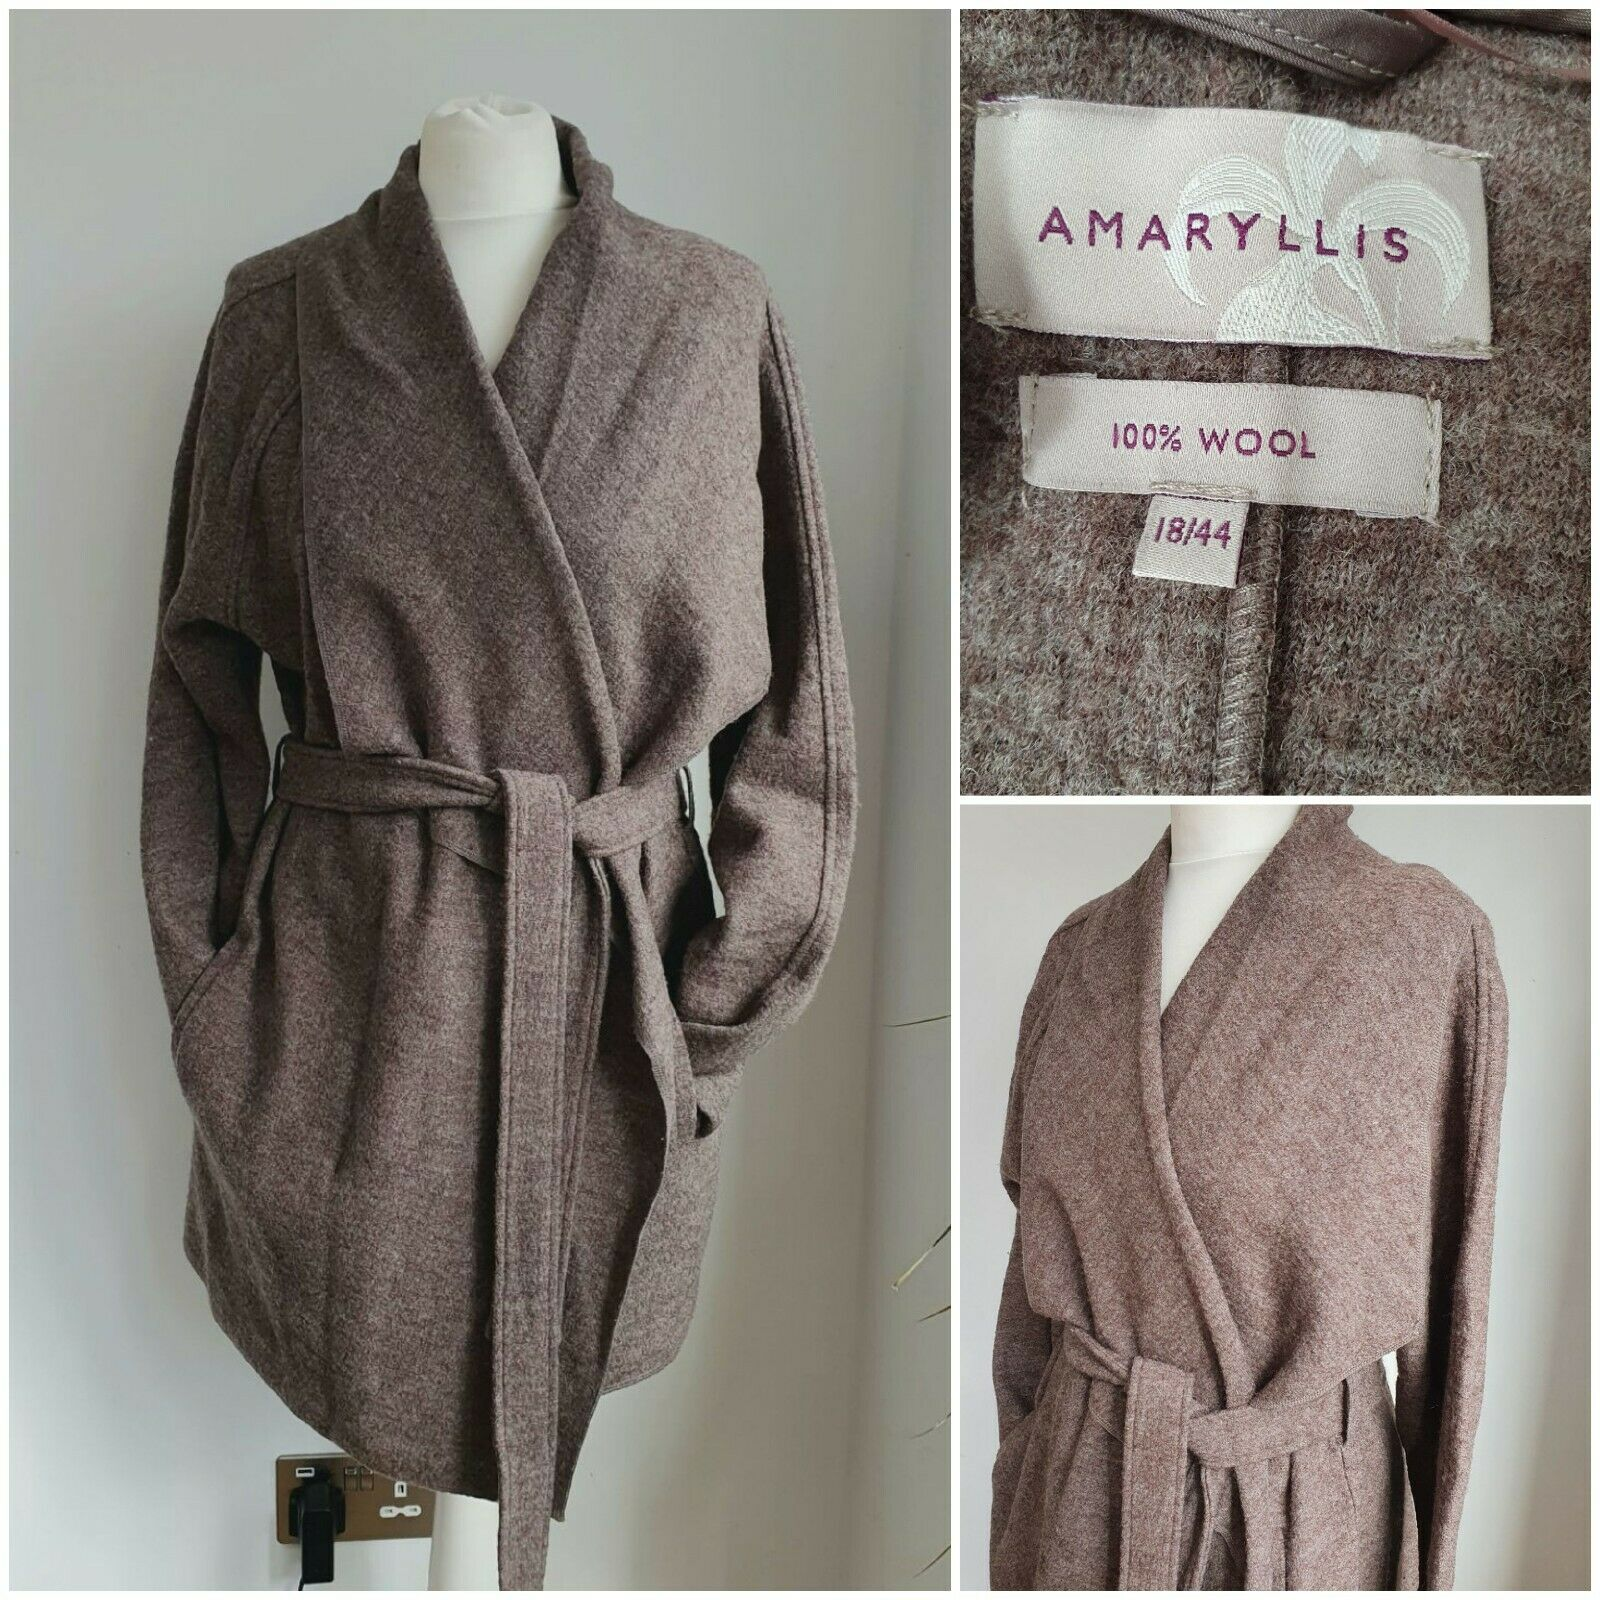 AMARYLLIS Wool Wrap Coat Size 18 Taupe Brown Belted Pockets